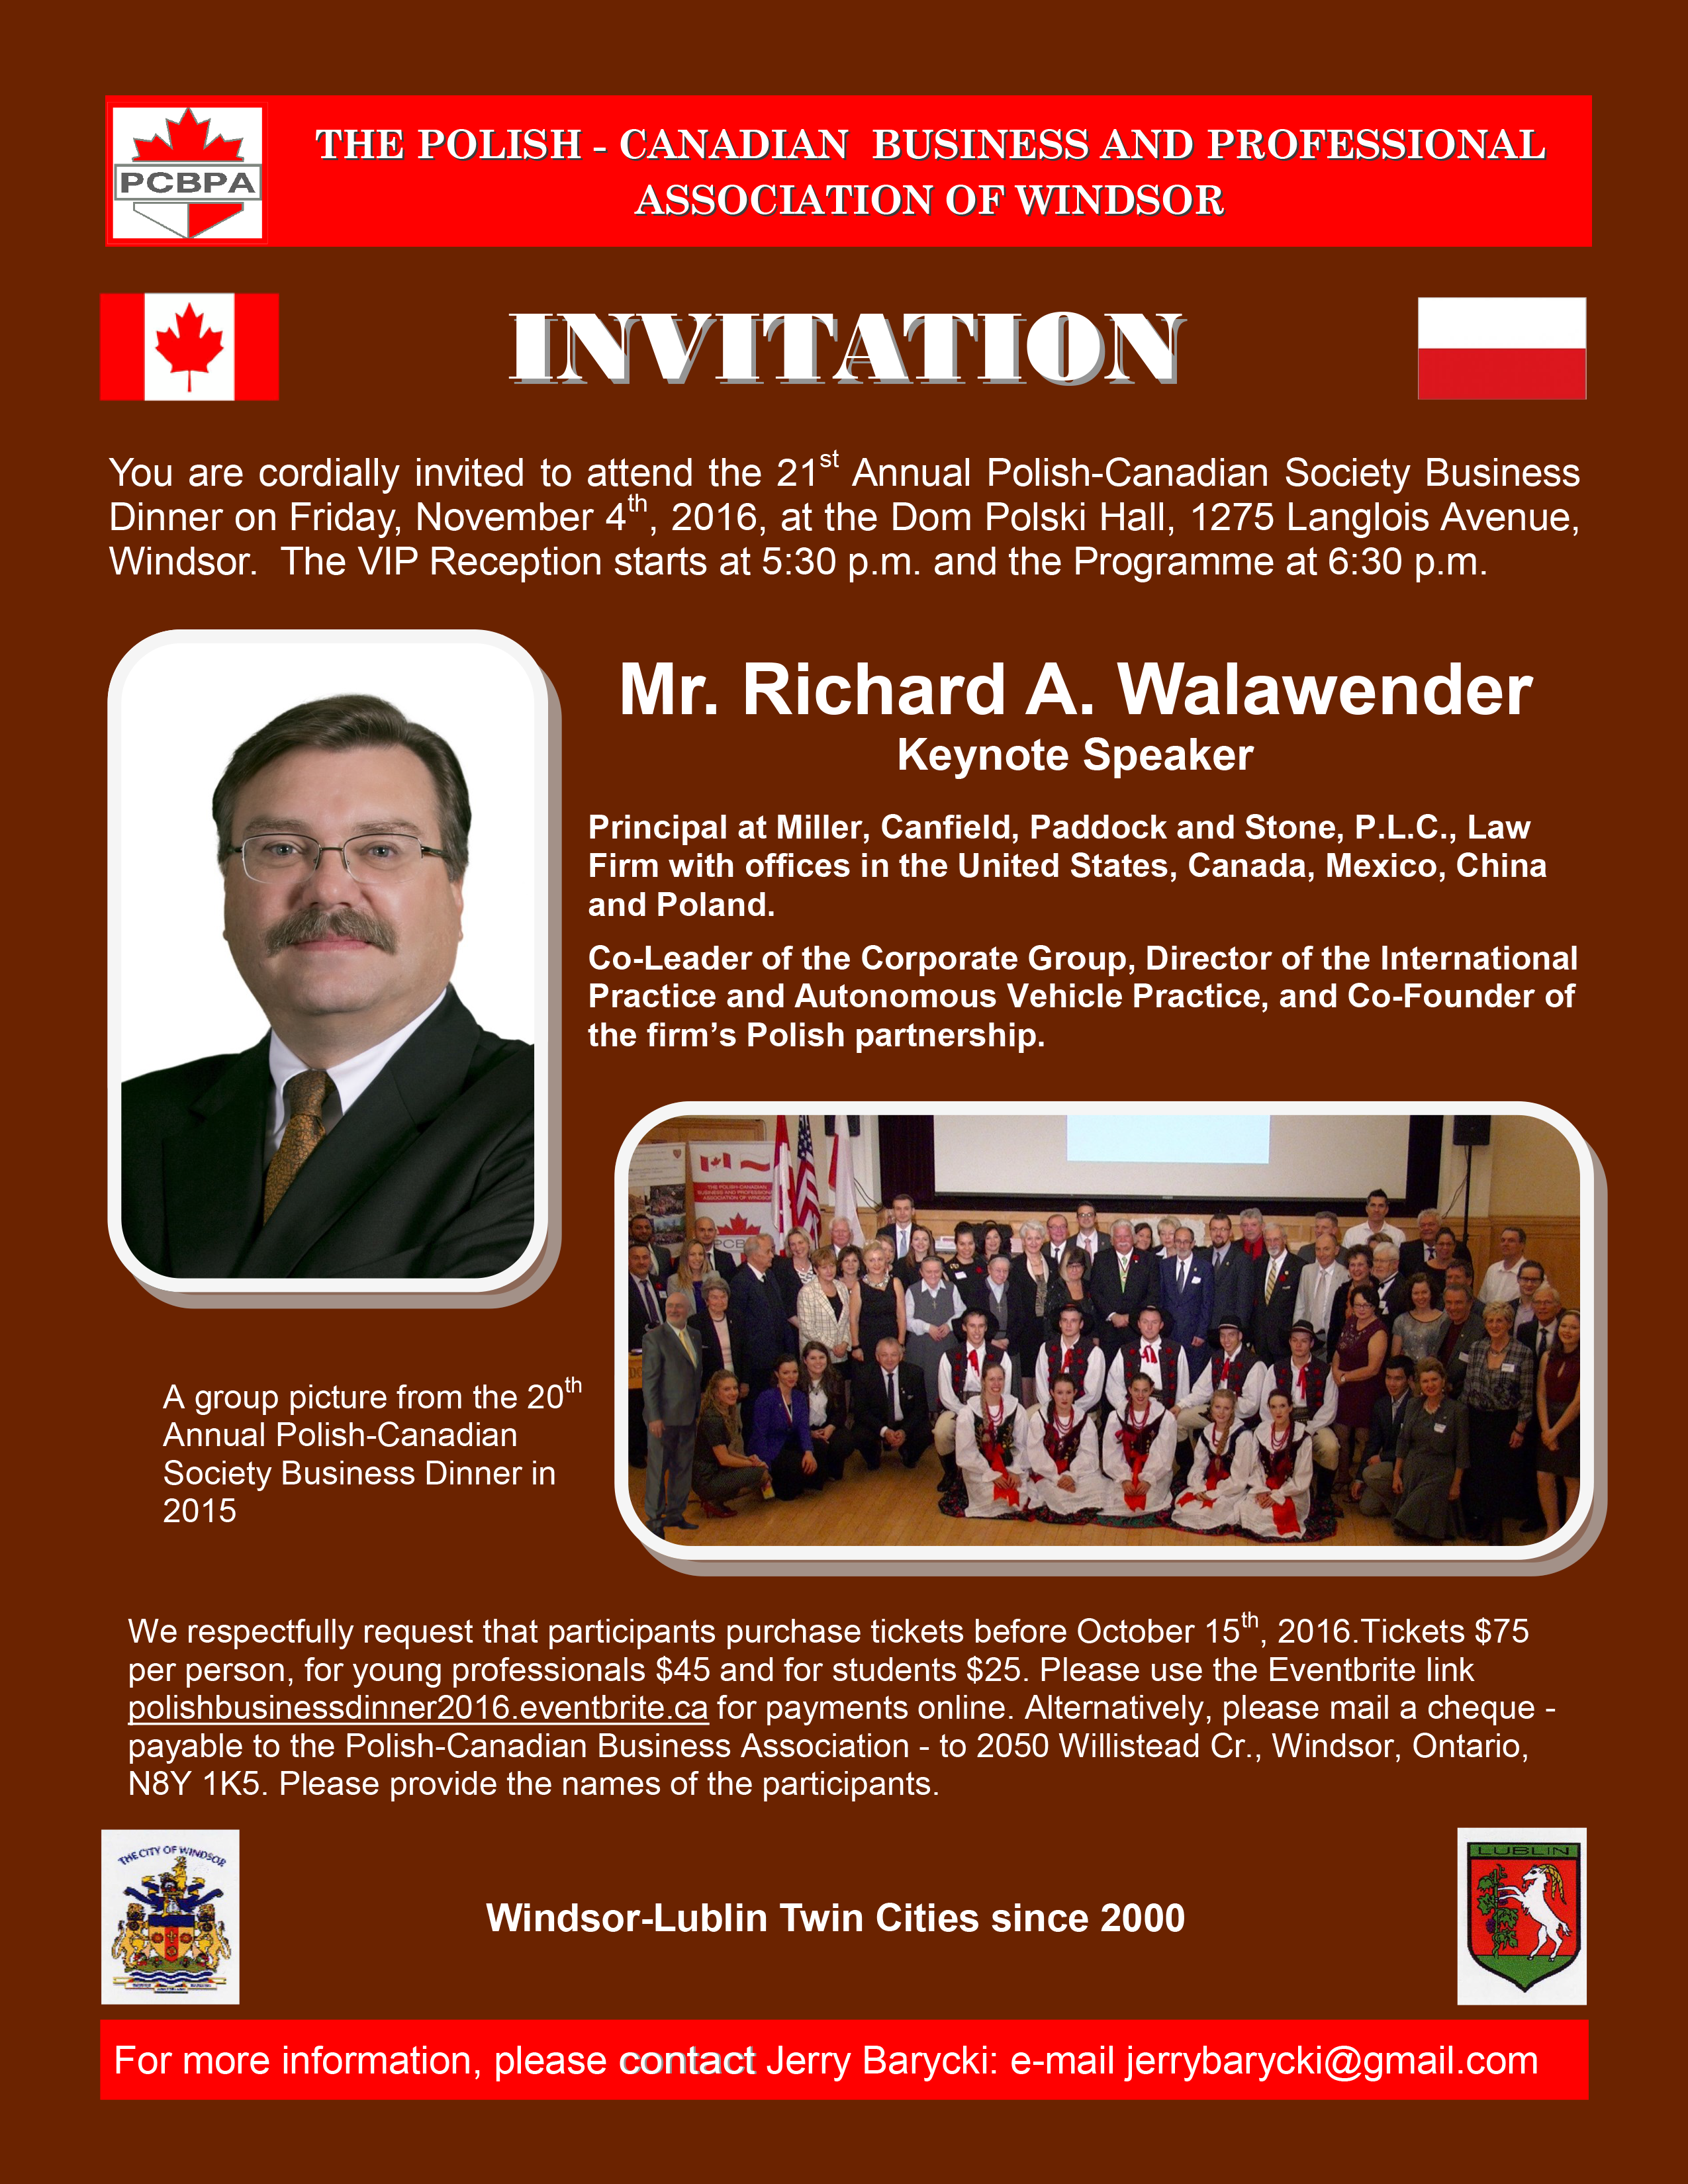 polish canadian business and professional association of windsor 2016 business dinner invitation